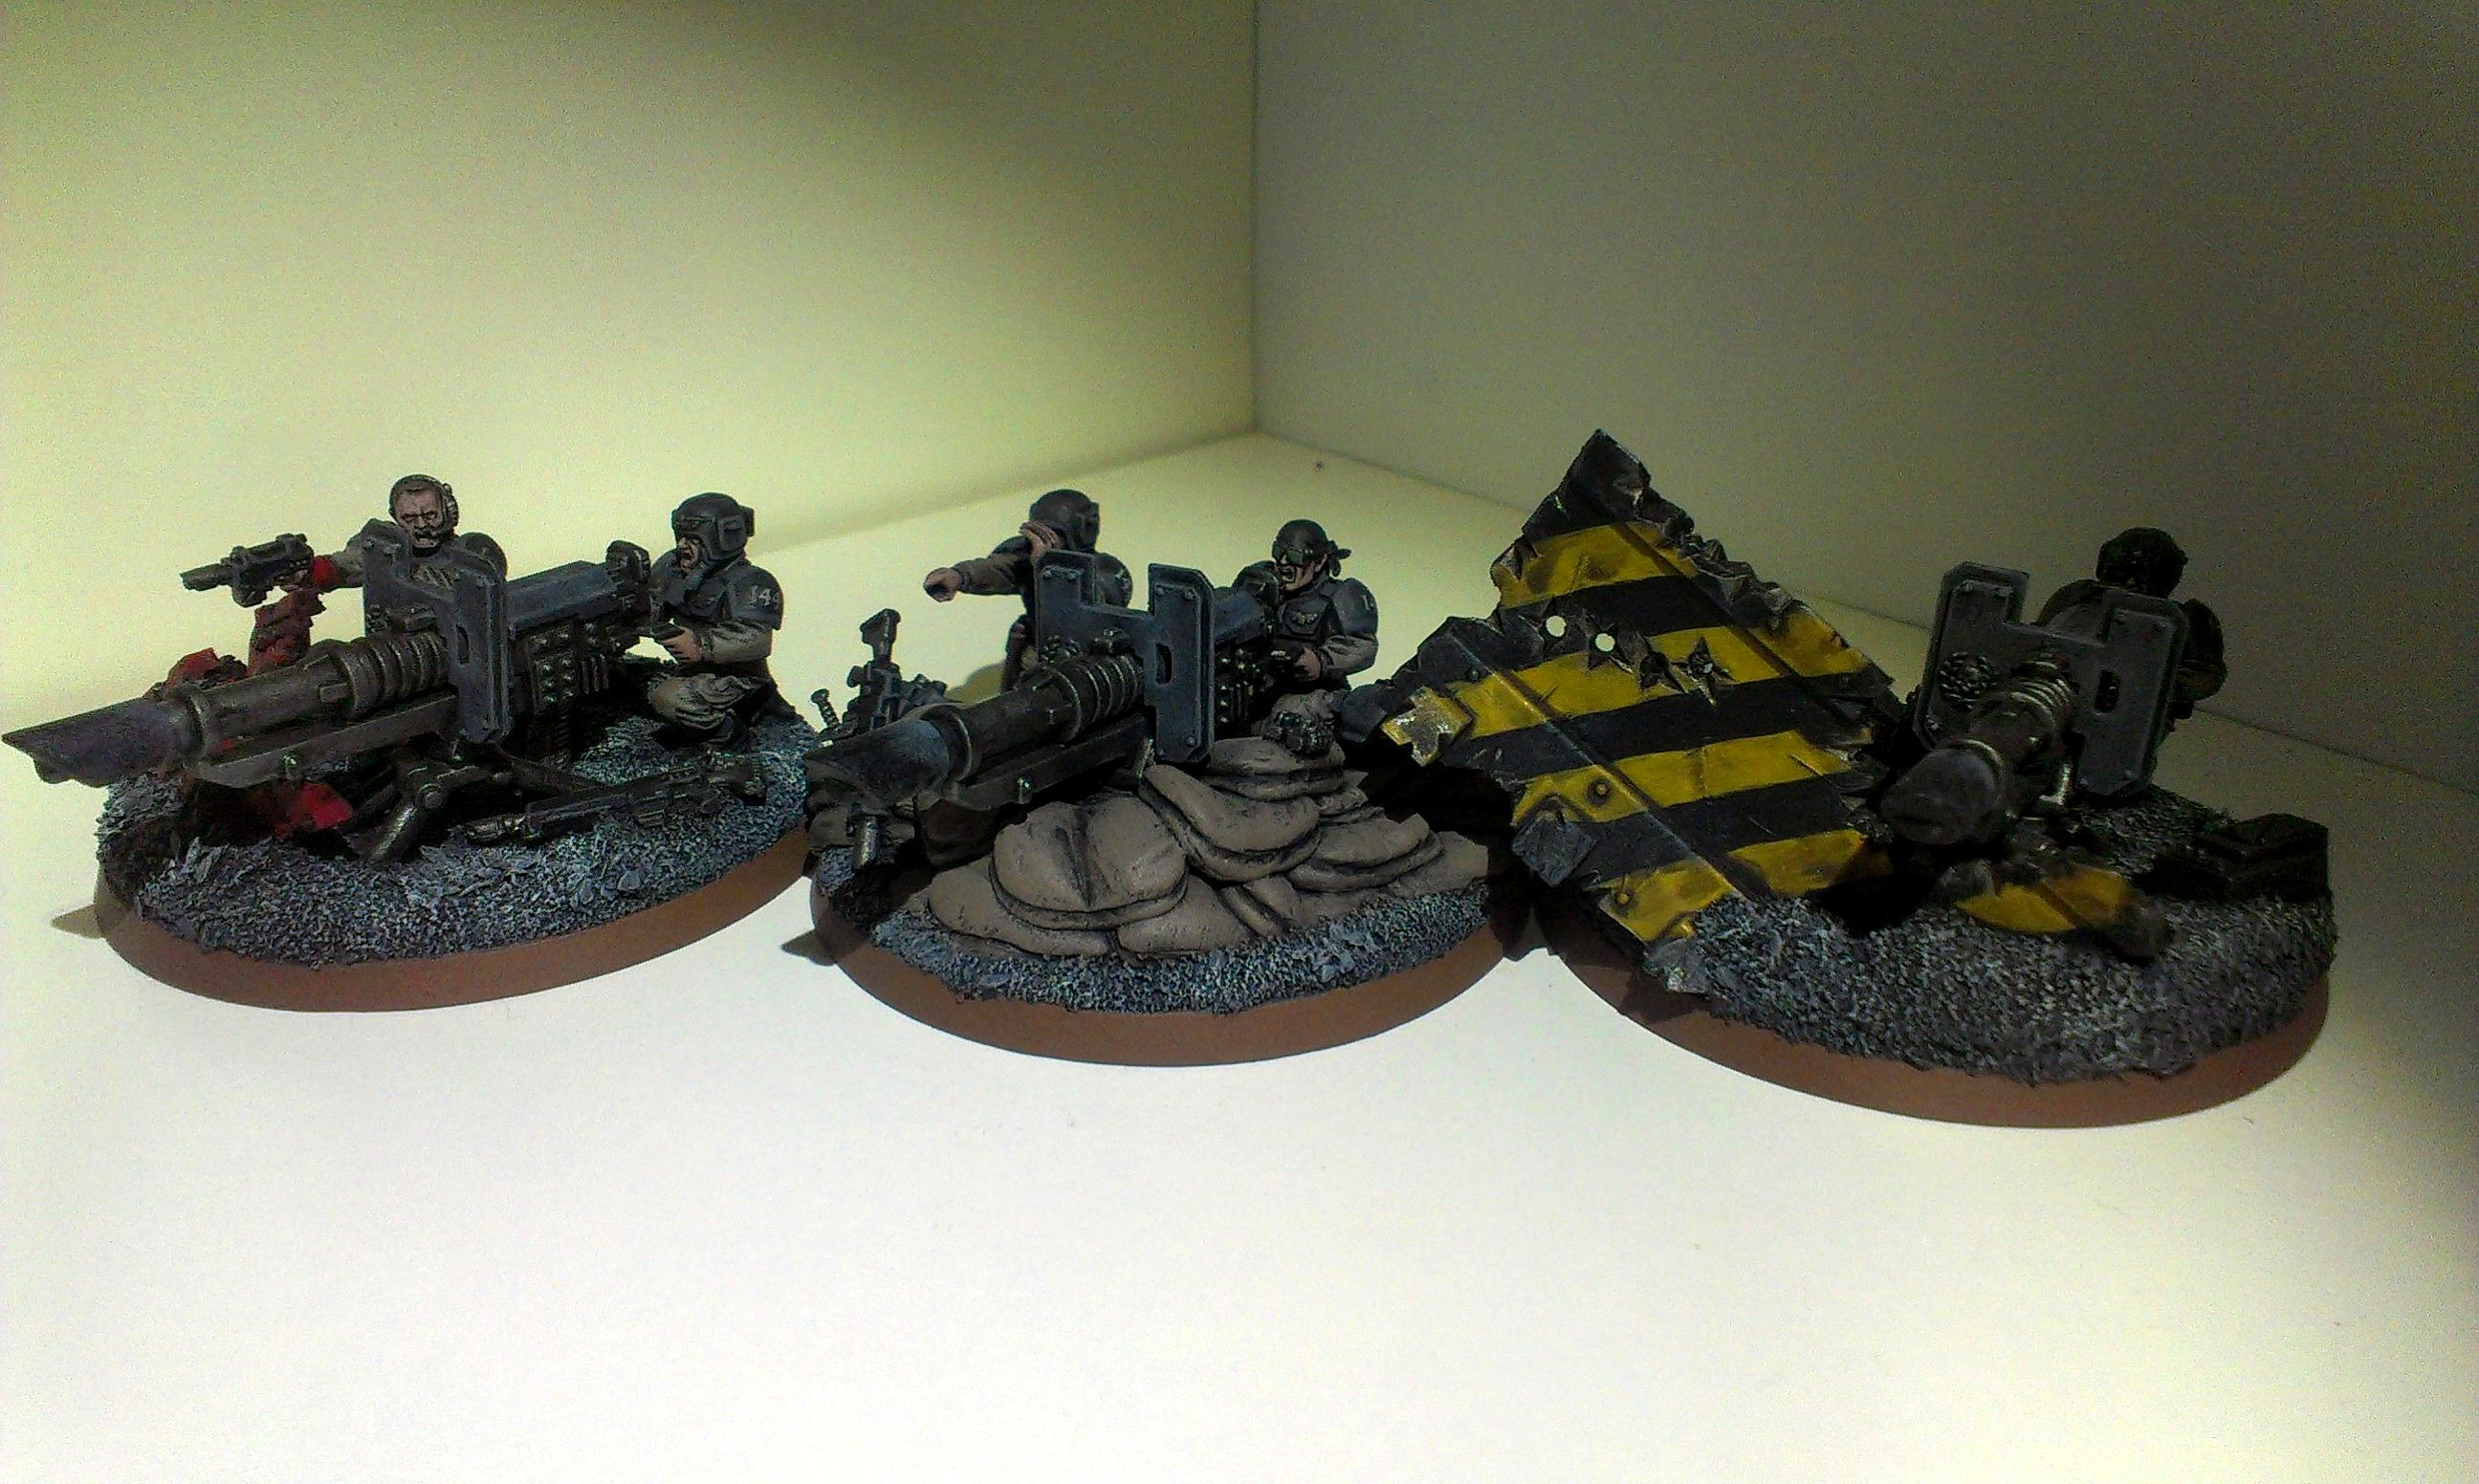 Astra Militarum, Cadians, Creed, Headquarters, Heavy Weapons Team, Imperial Guard, Infantry, Kell, Troop Choice, Warhammer 40,000